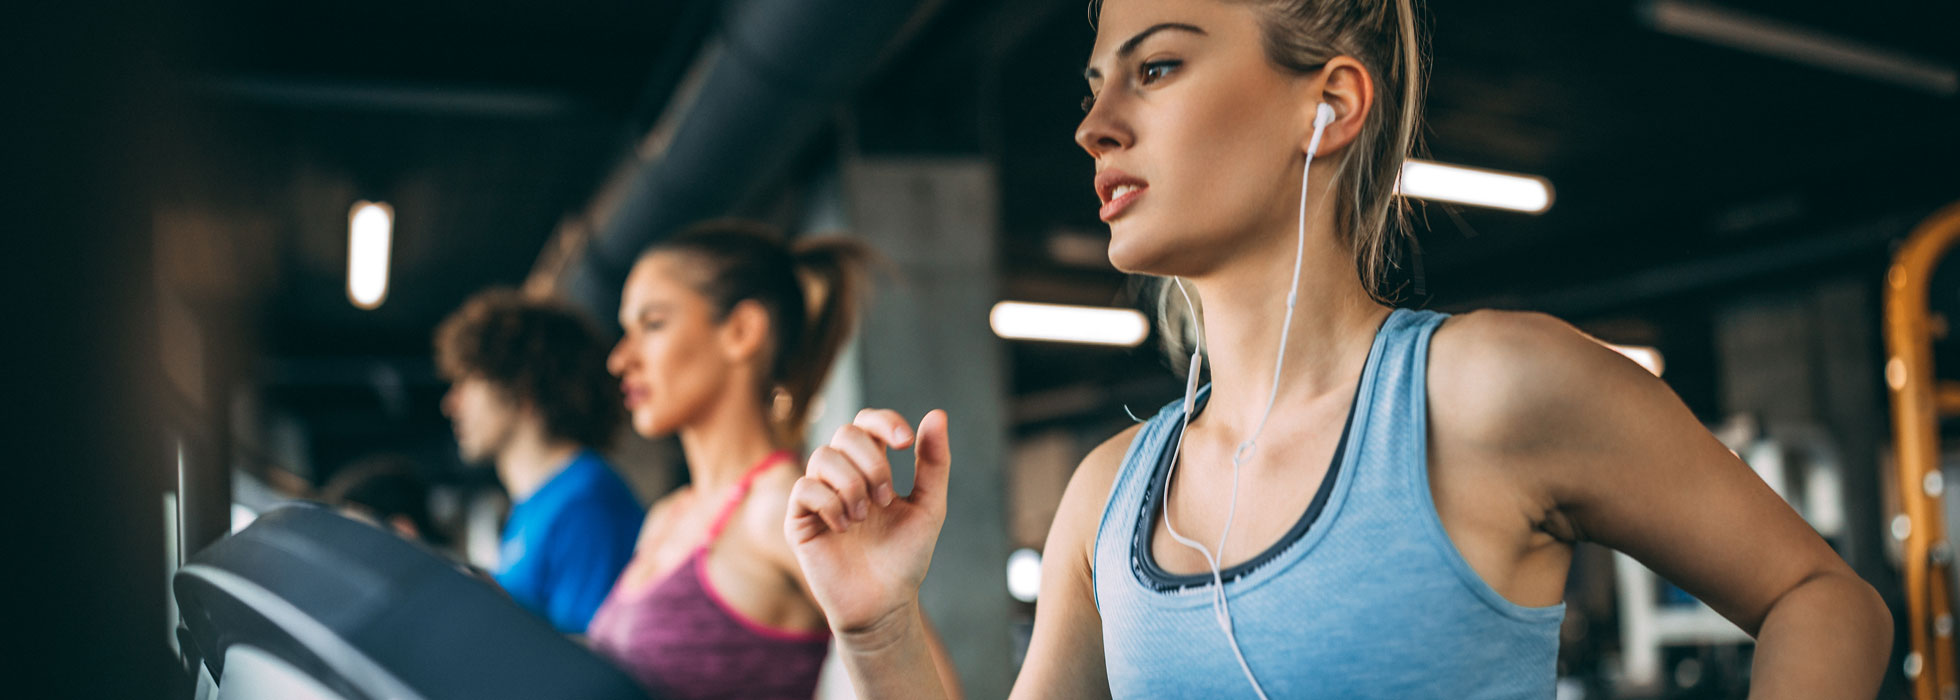 Why The Total Health Club Is Ranked One of the Best Gyms In Bloomfield